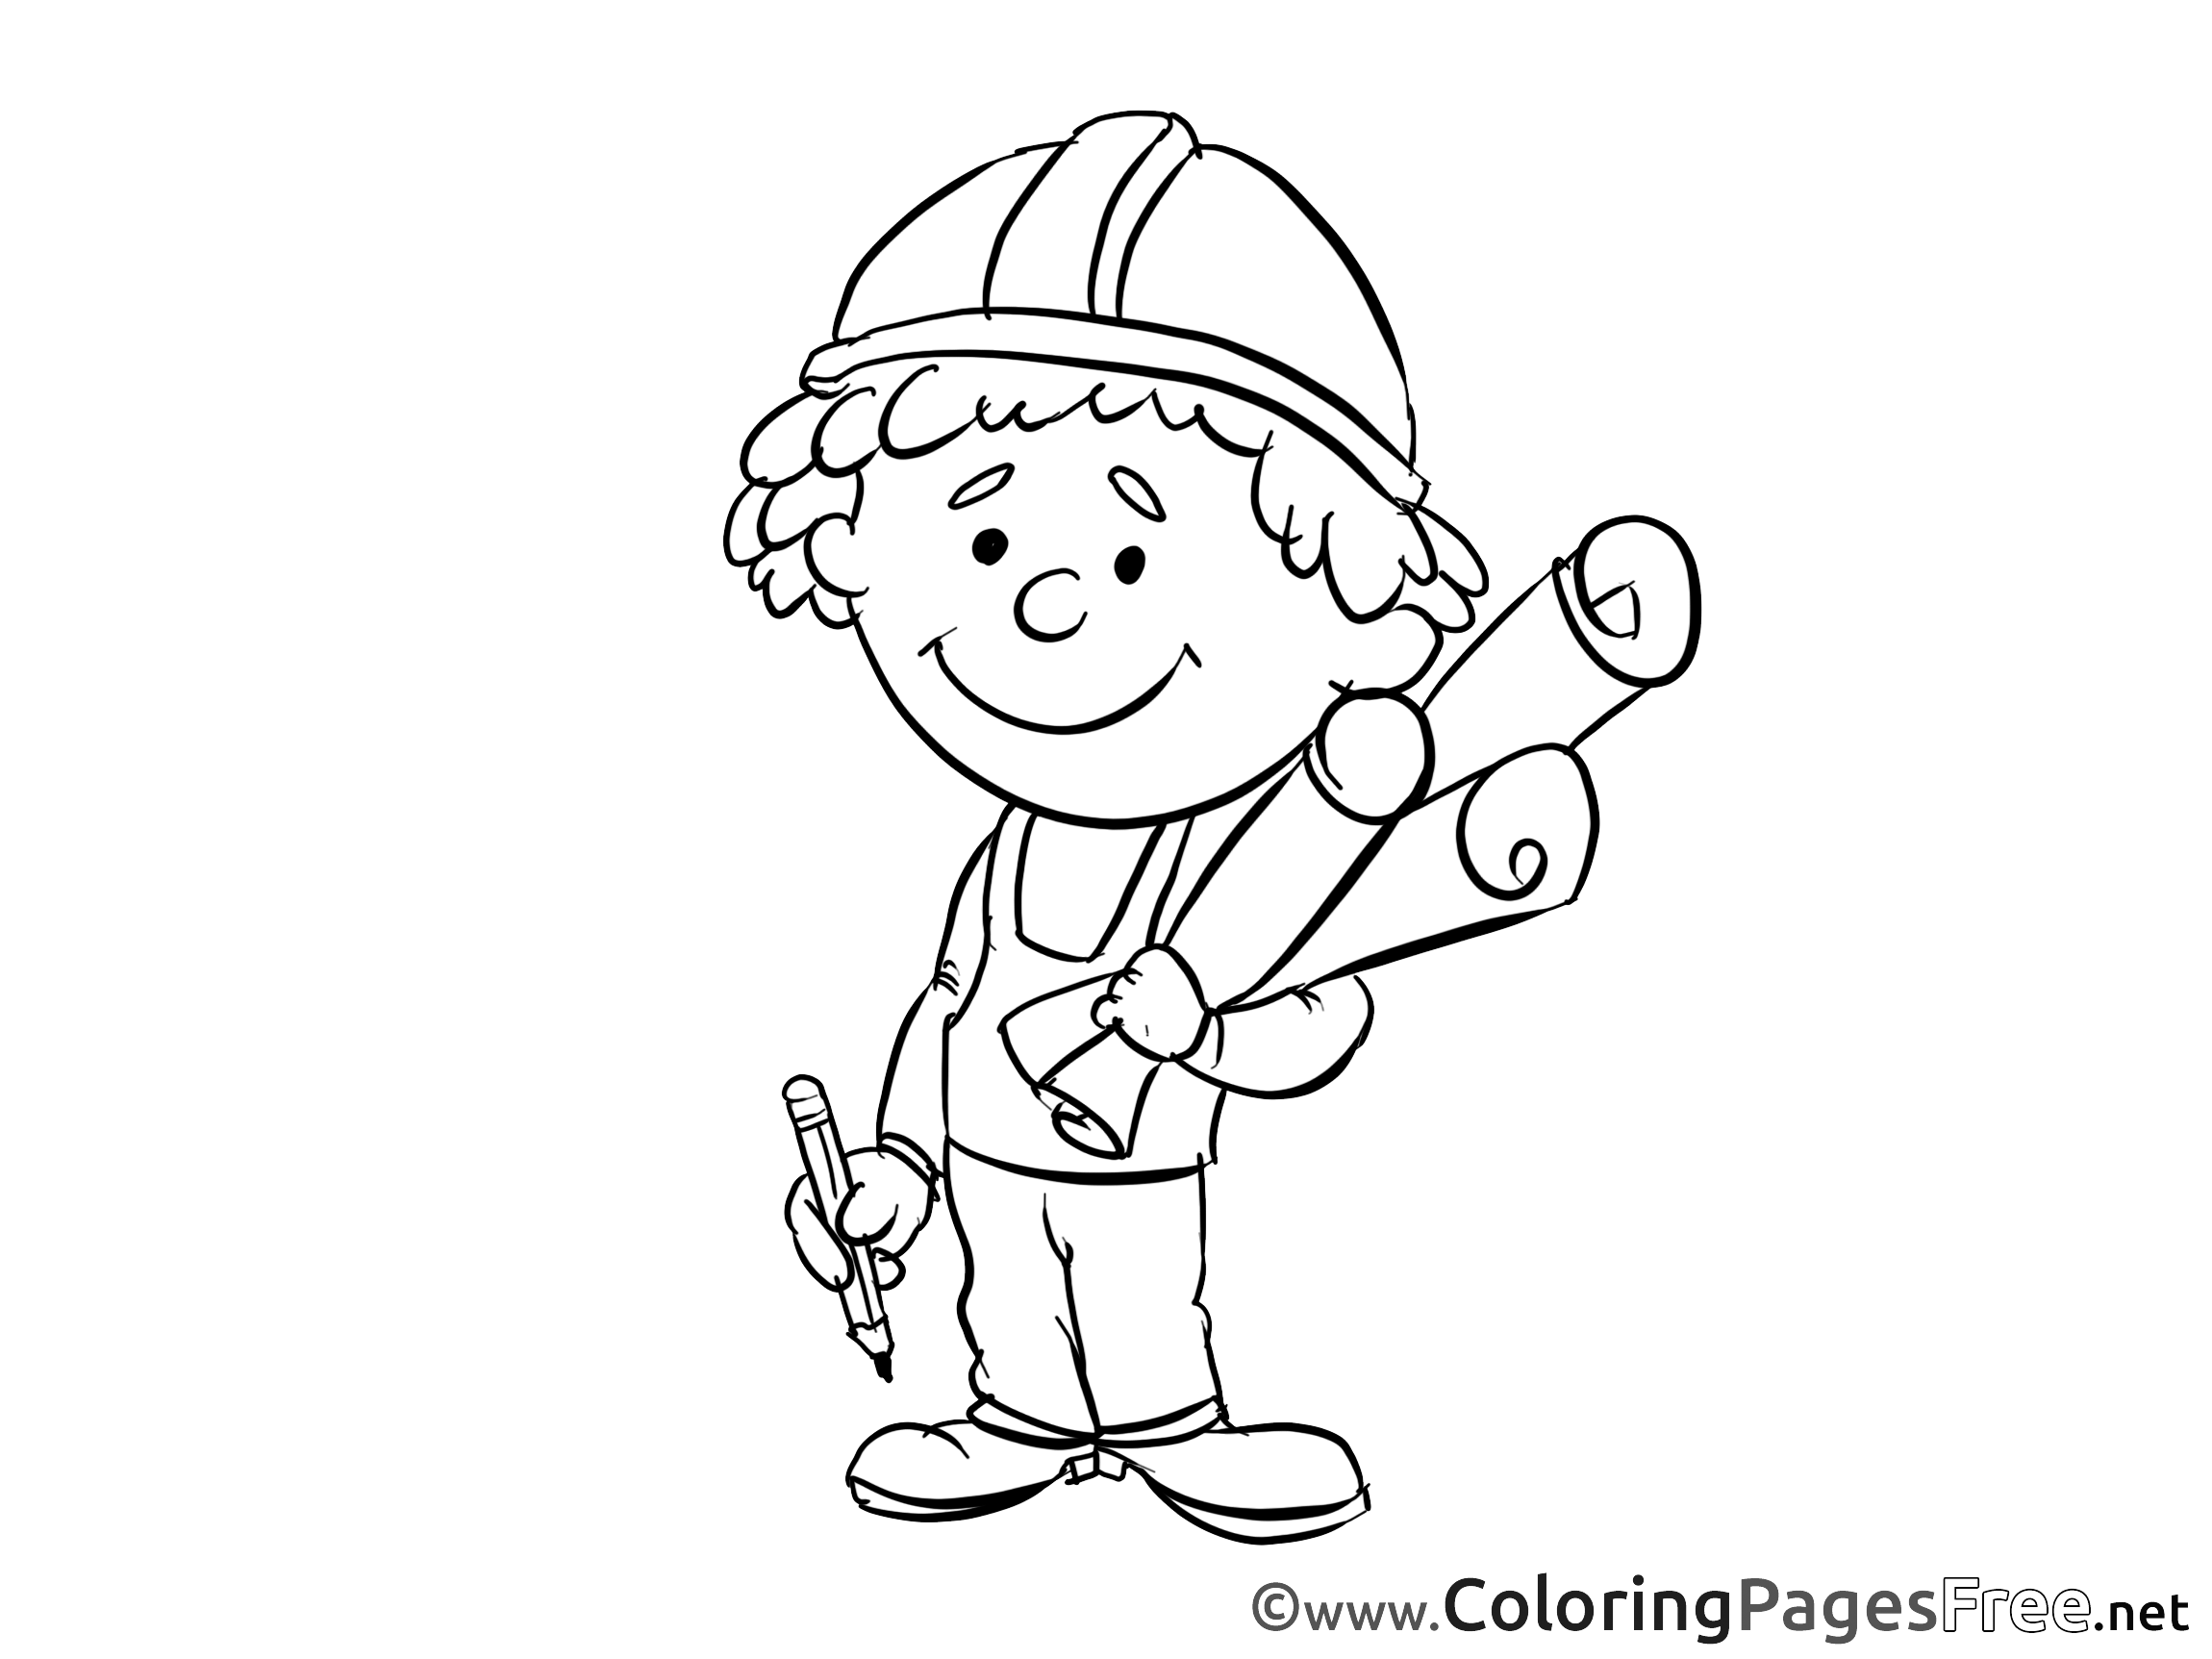 Coloring Book For Engineers : For Children free Coloring Pages Engineer